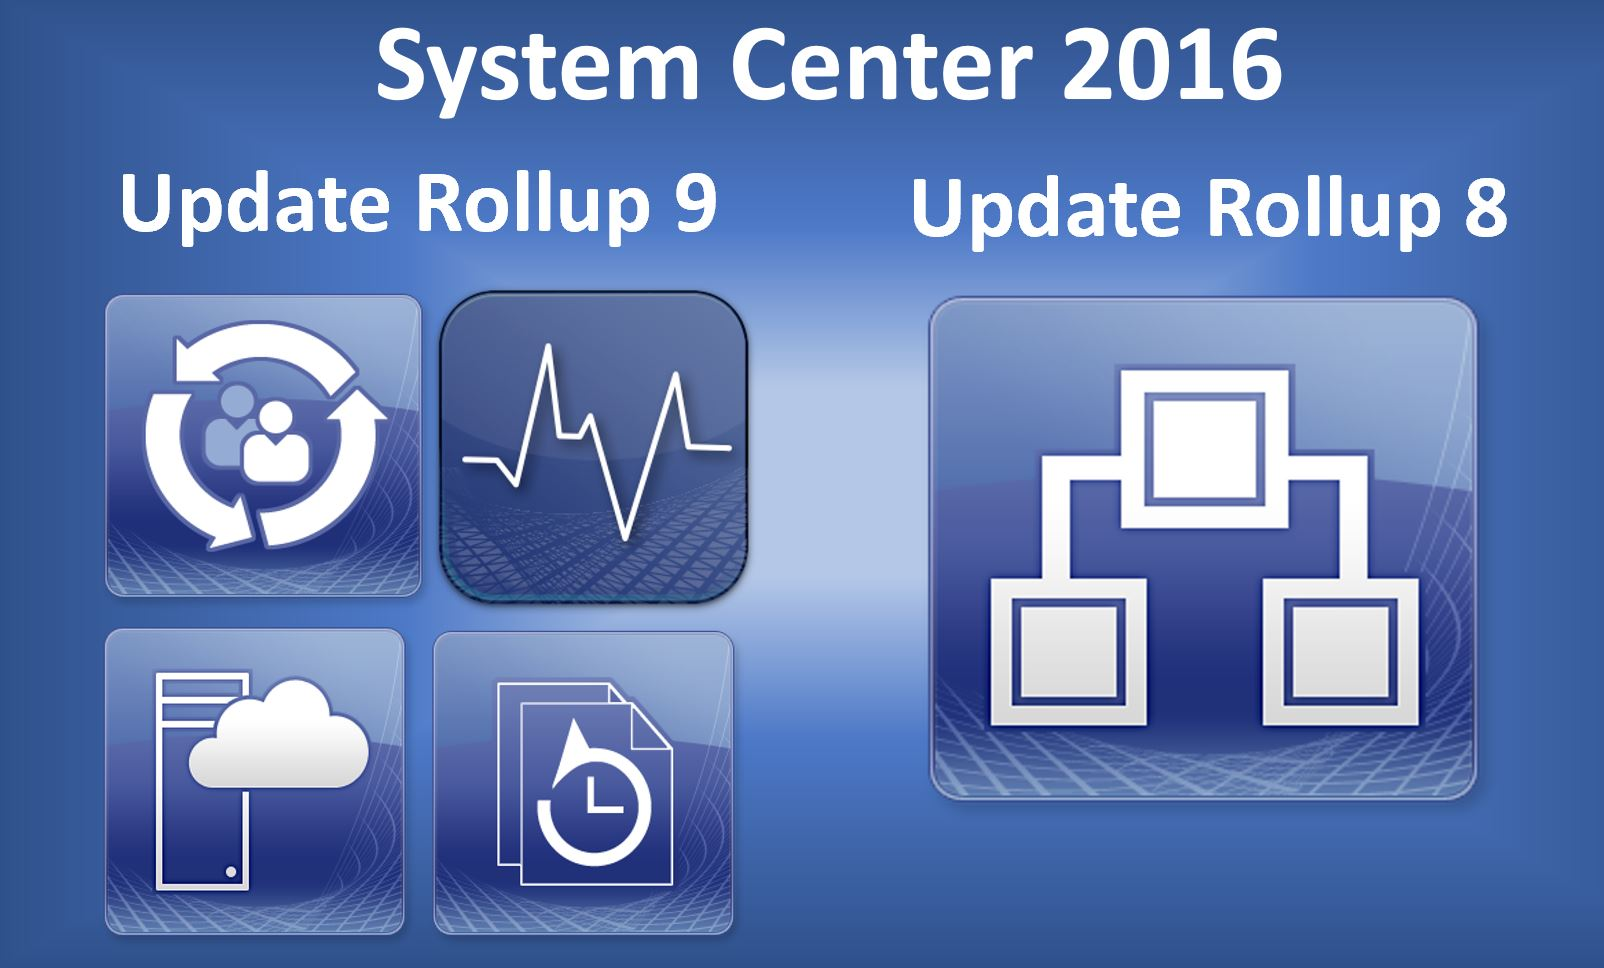 Update Rollup 9 for System Center 2016 has been released – Orchestrator not included